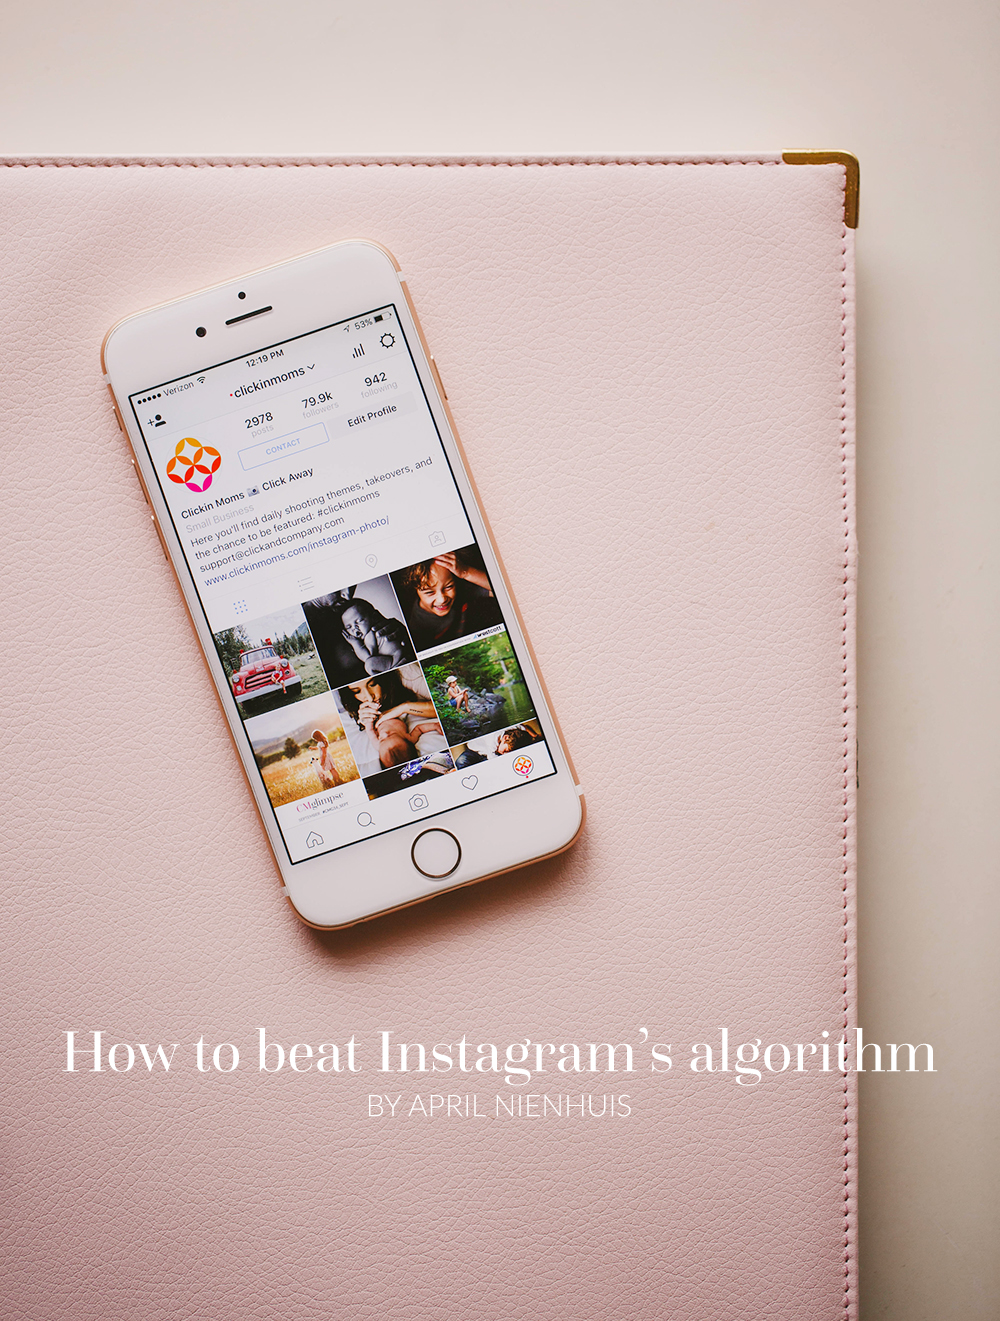 Instagram is changing. The chronological order or posts that you know and love will be replaced by an algorithm. Here's how you can beat it.